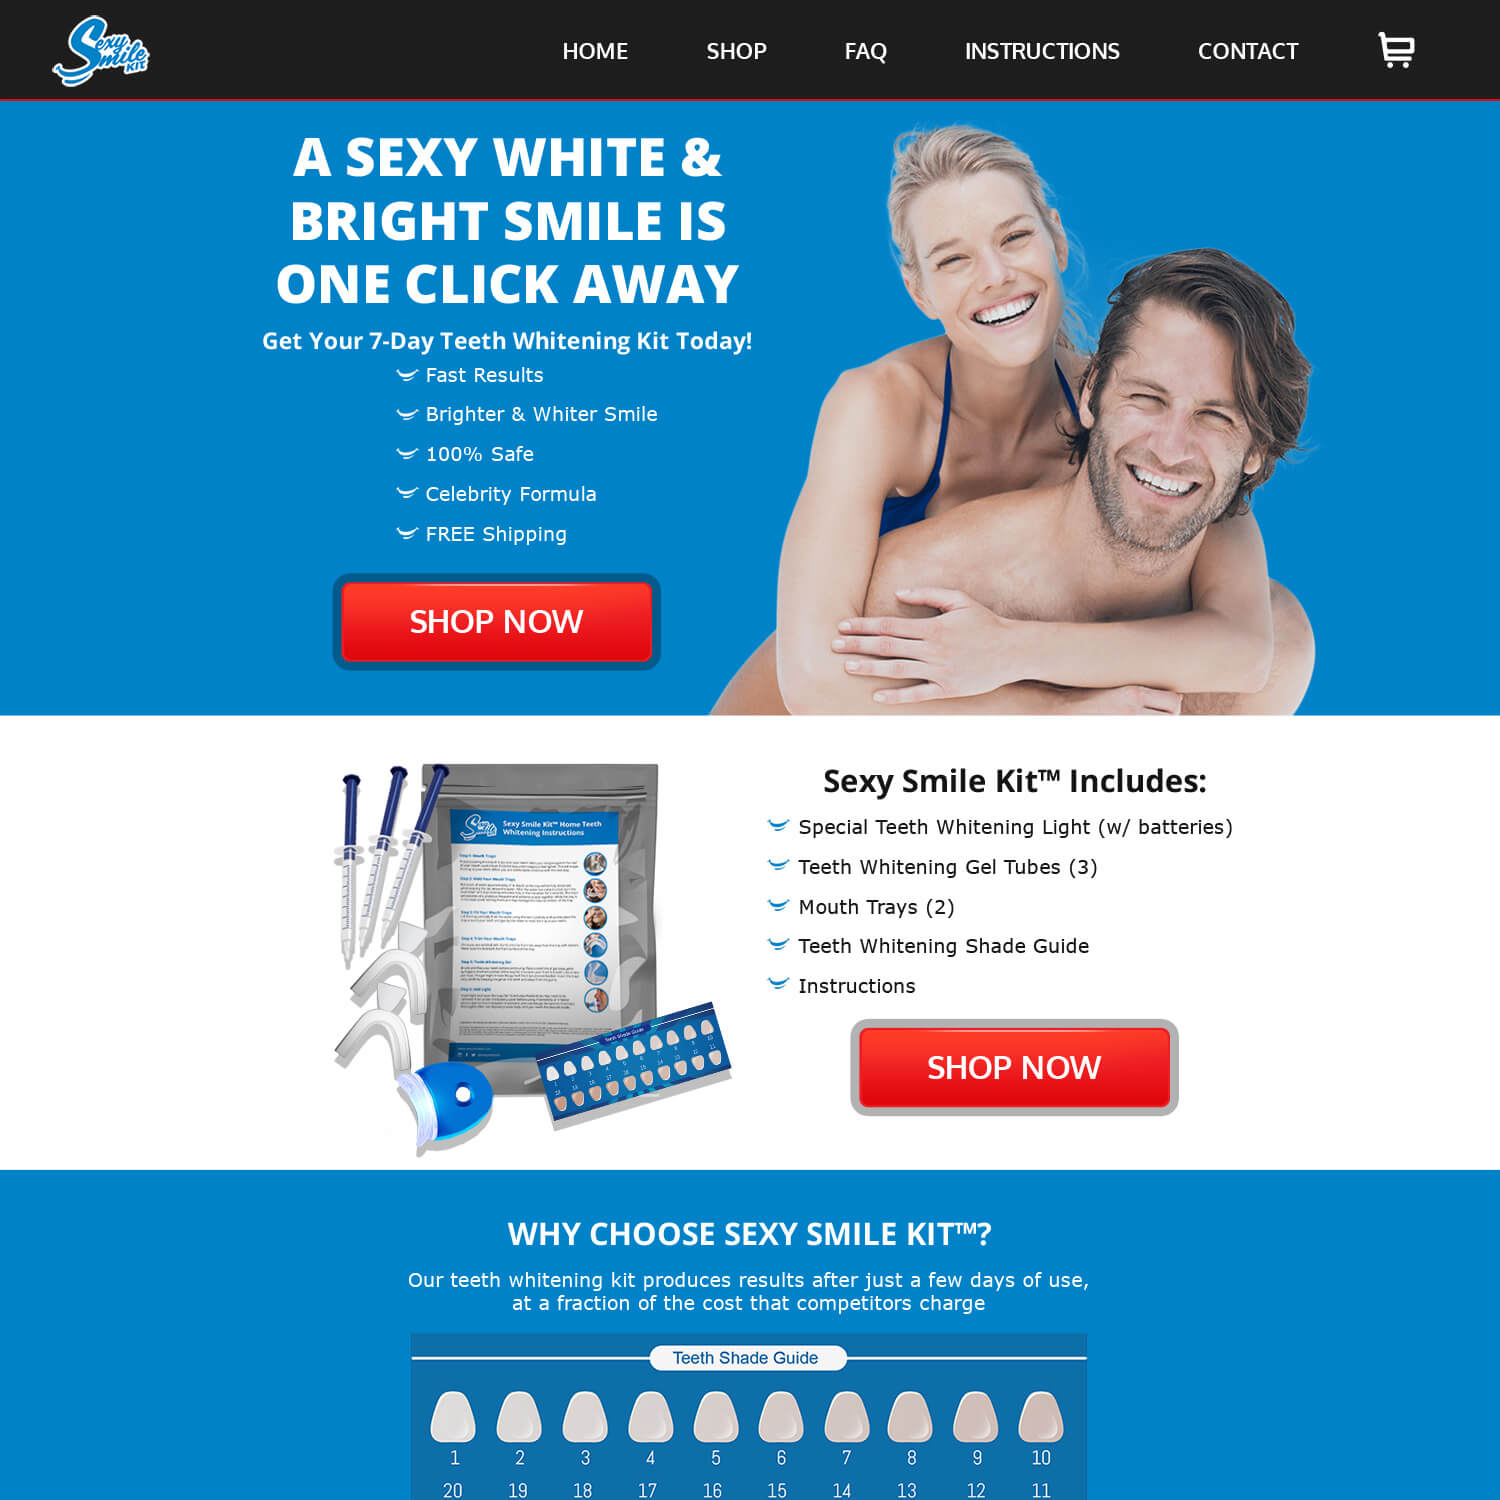 Sexy Smile Kit Web Design